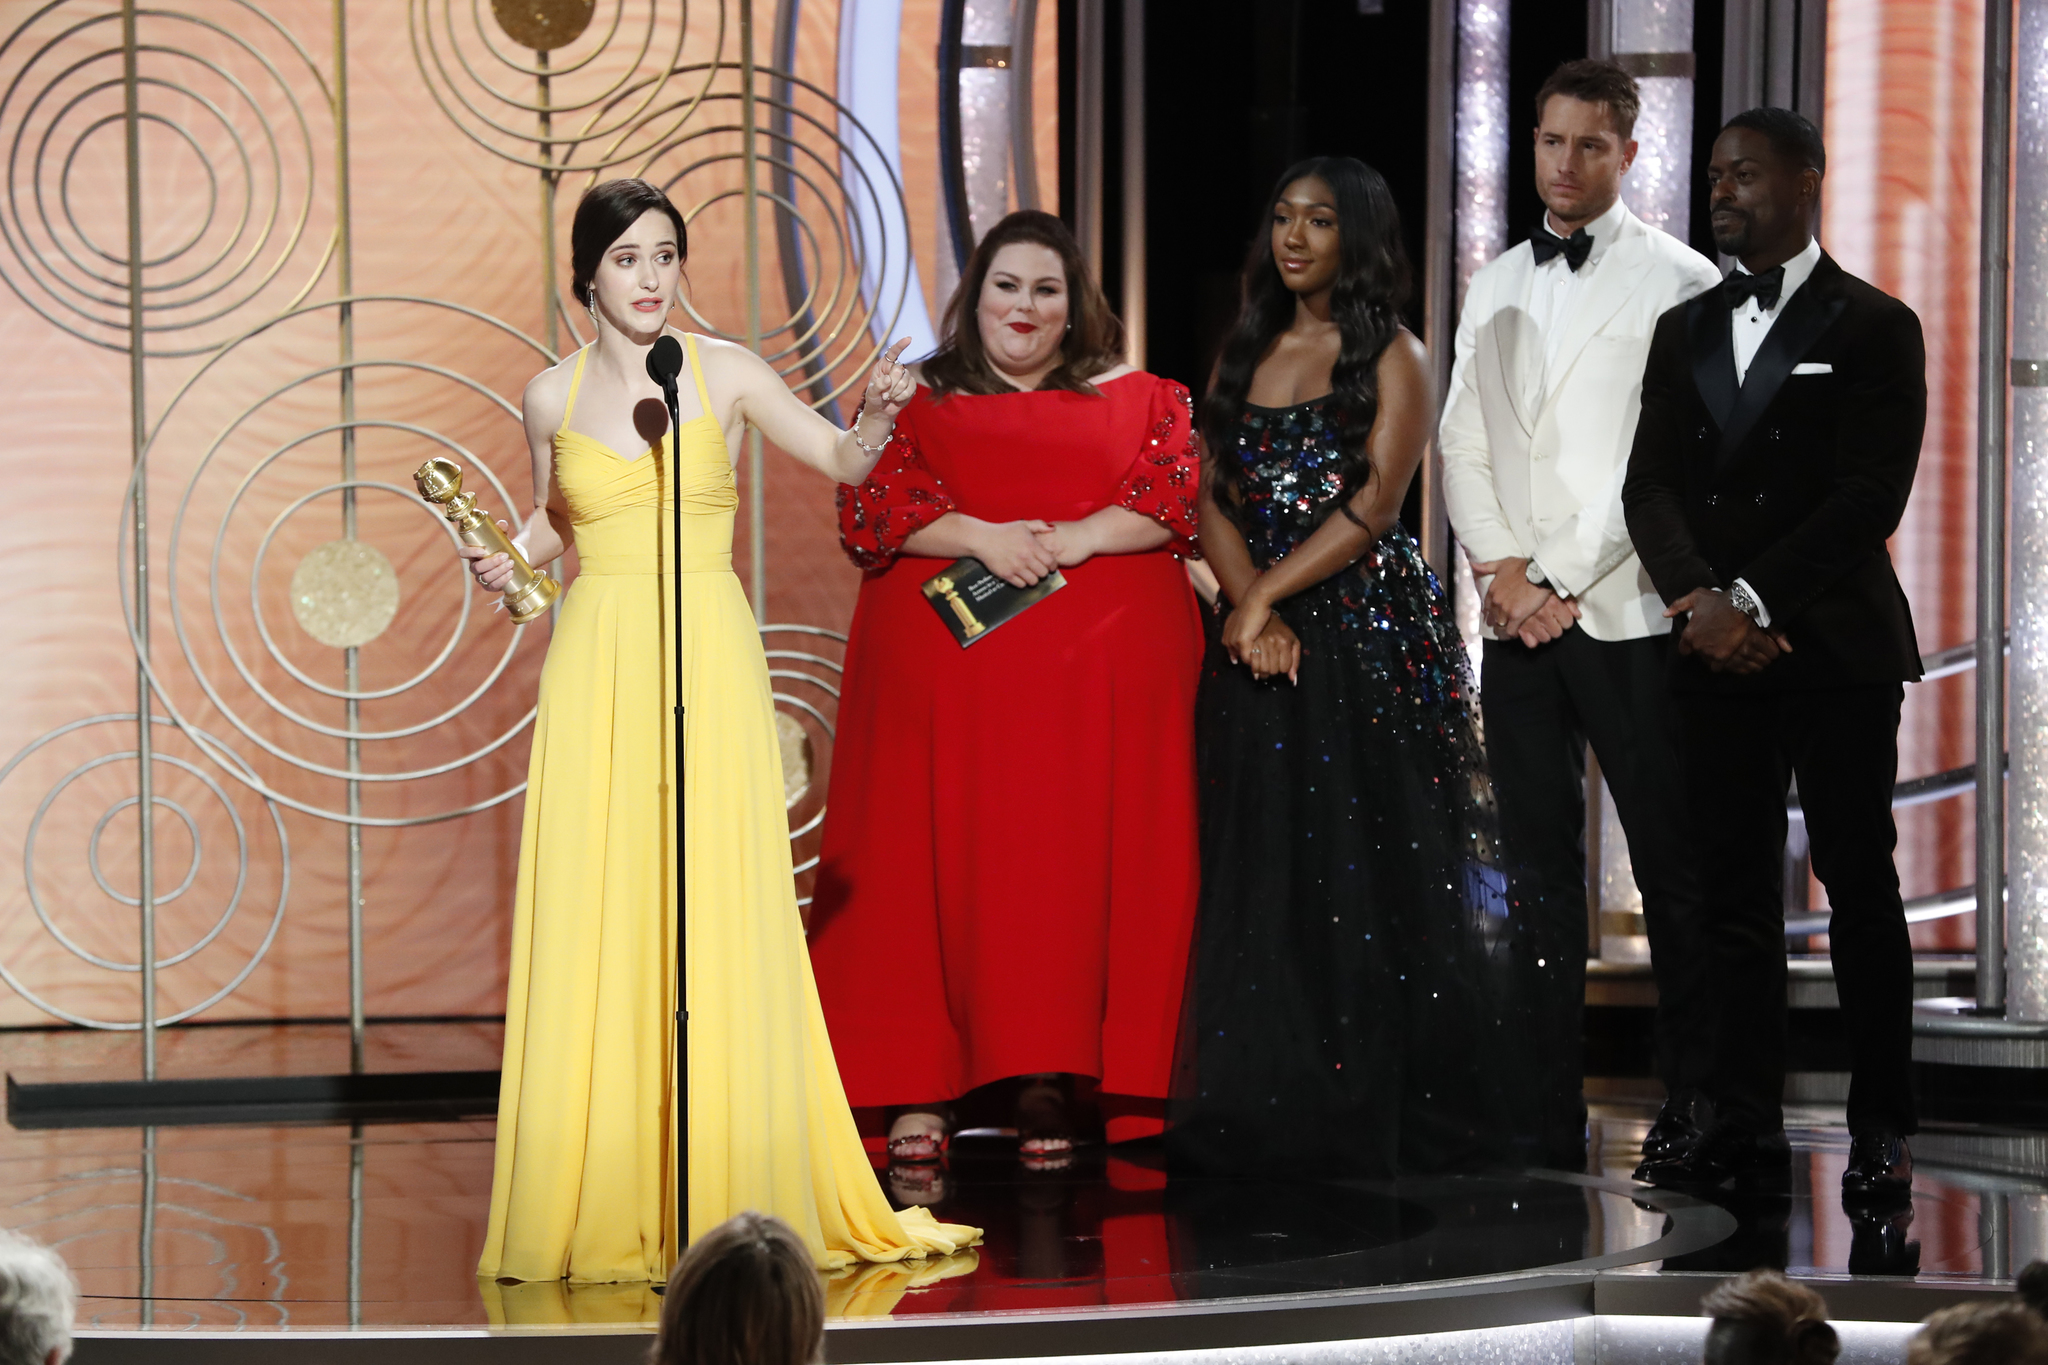 Isan Elba, Sterling K. Brown, Justin Hartley, Chrissy Metz, and Rachel Brosnahan at an event for 2019 Golden Globe Awards (2019)